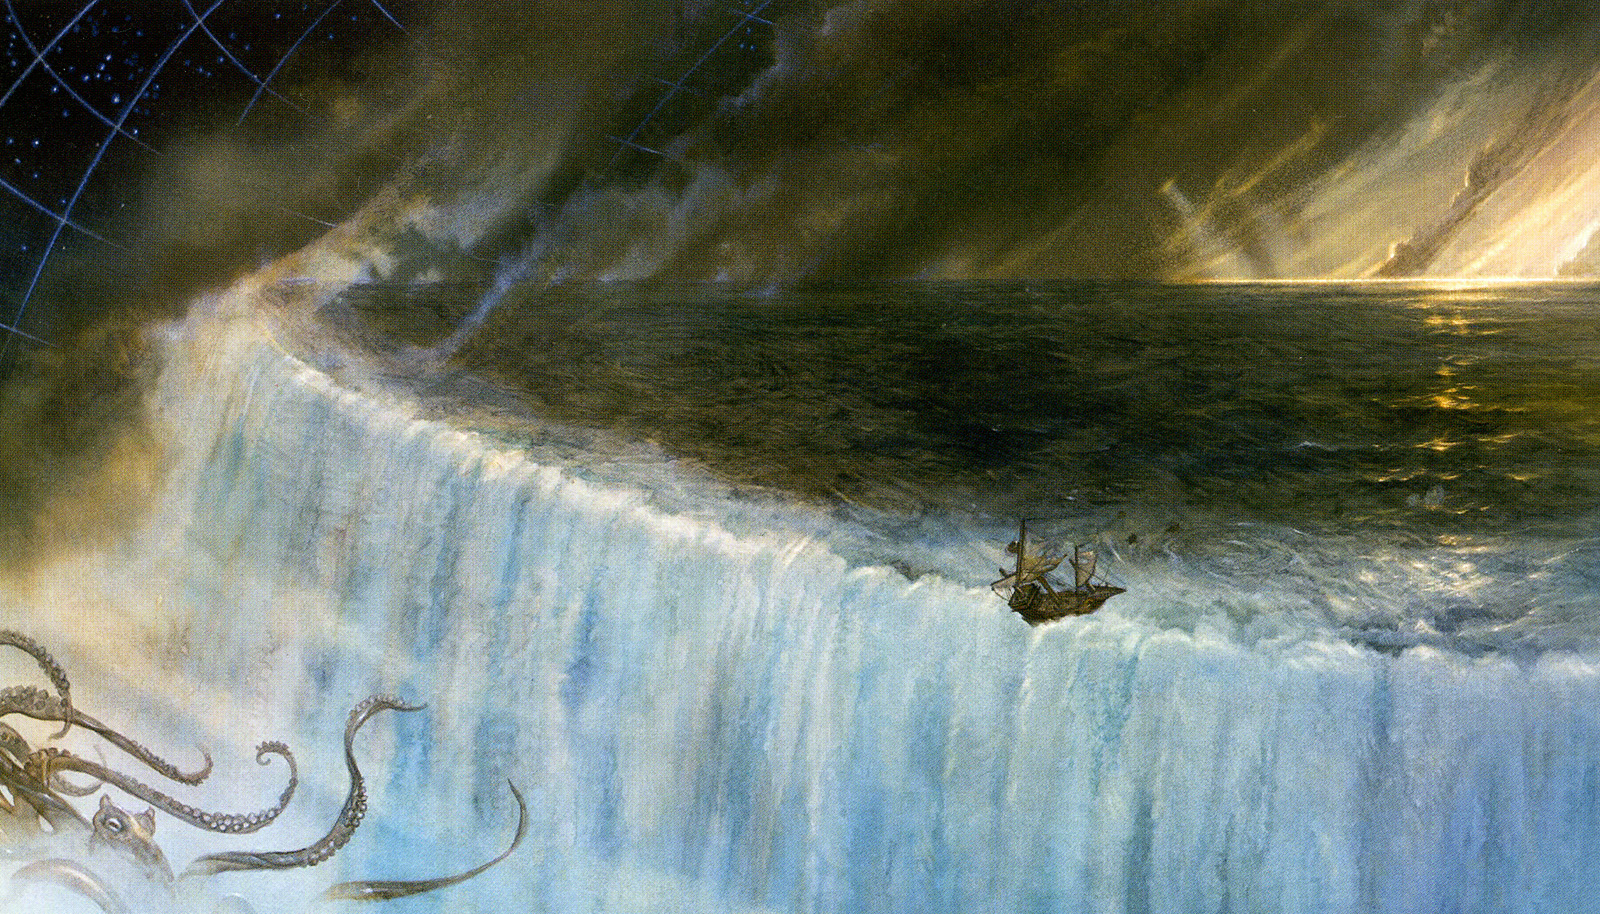 john_howe_unsorted_the-edge-of-the-world